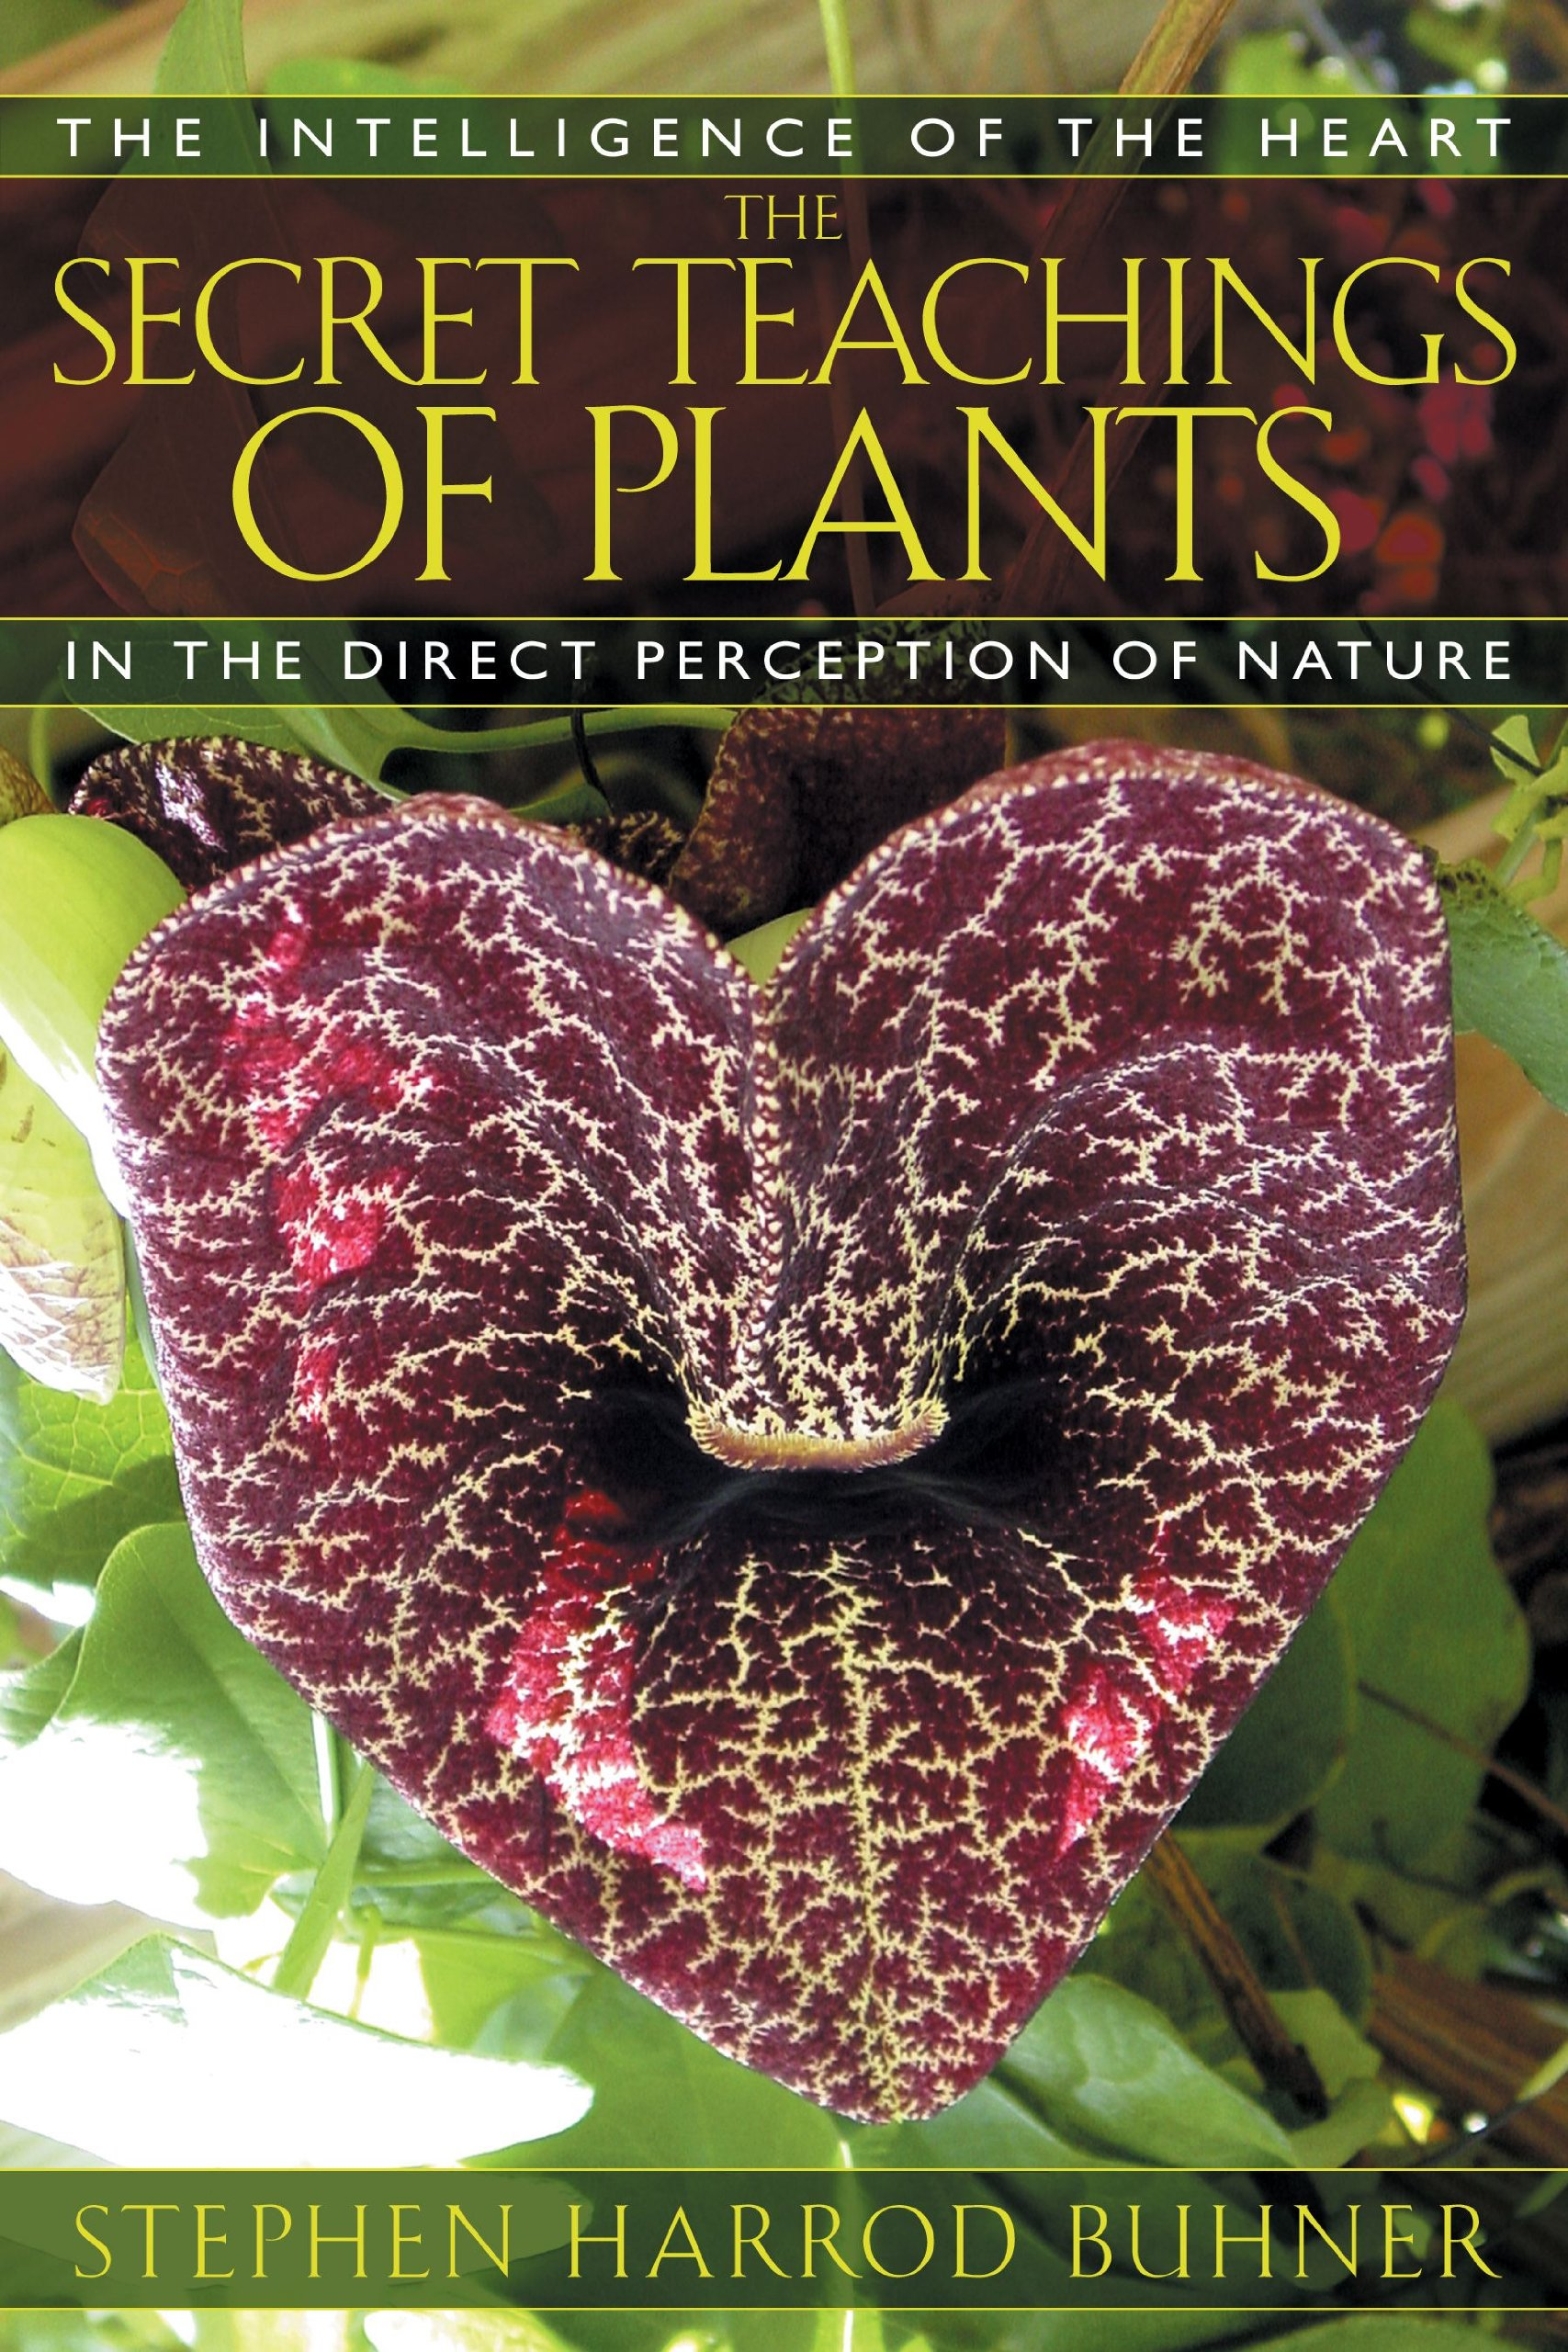 the secret teachings of plants : the intelligence of the heart in the direct perception of nature - By Stephen Harrod BuhnerAll ancient and indigenous peoples insisted their knowledge of plant medicines came from the plants themselves and not through trial-and-error experimentation. Less well known is that many Western peoples made this same assertion. There are, in fact, two modes of cognition available to all human beings–the brain-based linear and the heart-based holistic. The heart-centered mode of perception can be exceptionally accurate and detailed in its information gathering capacities if, as indigenous and ancient peoples asserted, the heart's ability as an organ of perception is developed.Author Stephen Harrod Buhner explores this second mode of perception in great detail through the work of numerous remarkable people, from Luther Burbank, who cultivated the majority of food plants we now take for granted, to the great German poet and scientist Goethe and his studies of the metamorphosis of plants. Buhner explores the commonalities among these individuals in their approach to learning from the plant world and outlines the specific steps involved. Readers will gain the tools necessary to gather information directly from the heart of Nature, to directly learn the medicinal uses of plants, to engage in diagnosis of disease, and to understand the soul-making process that such deep connection with the world engenders.